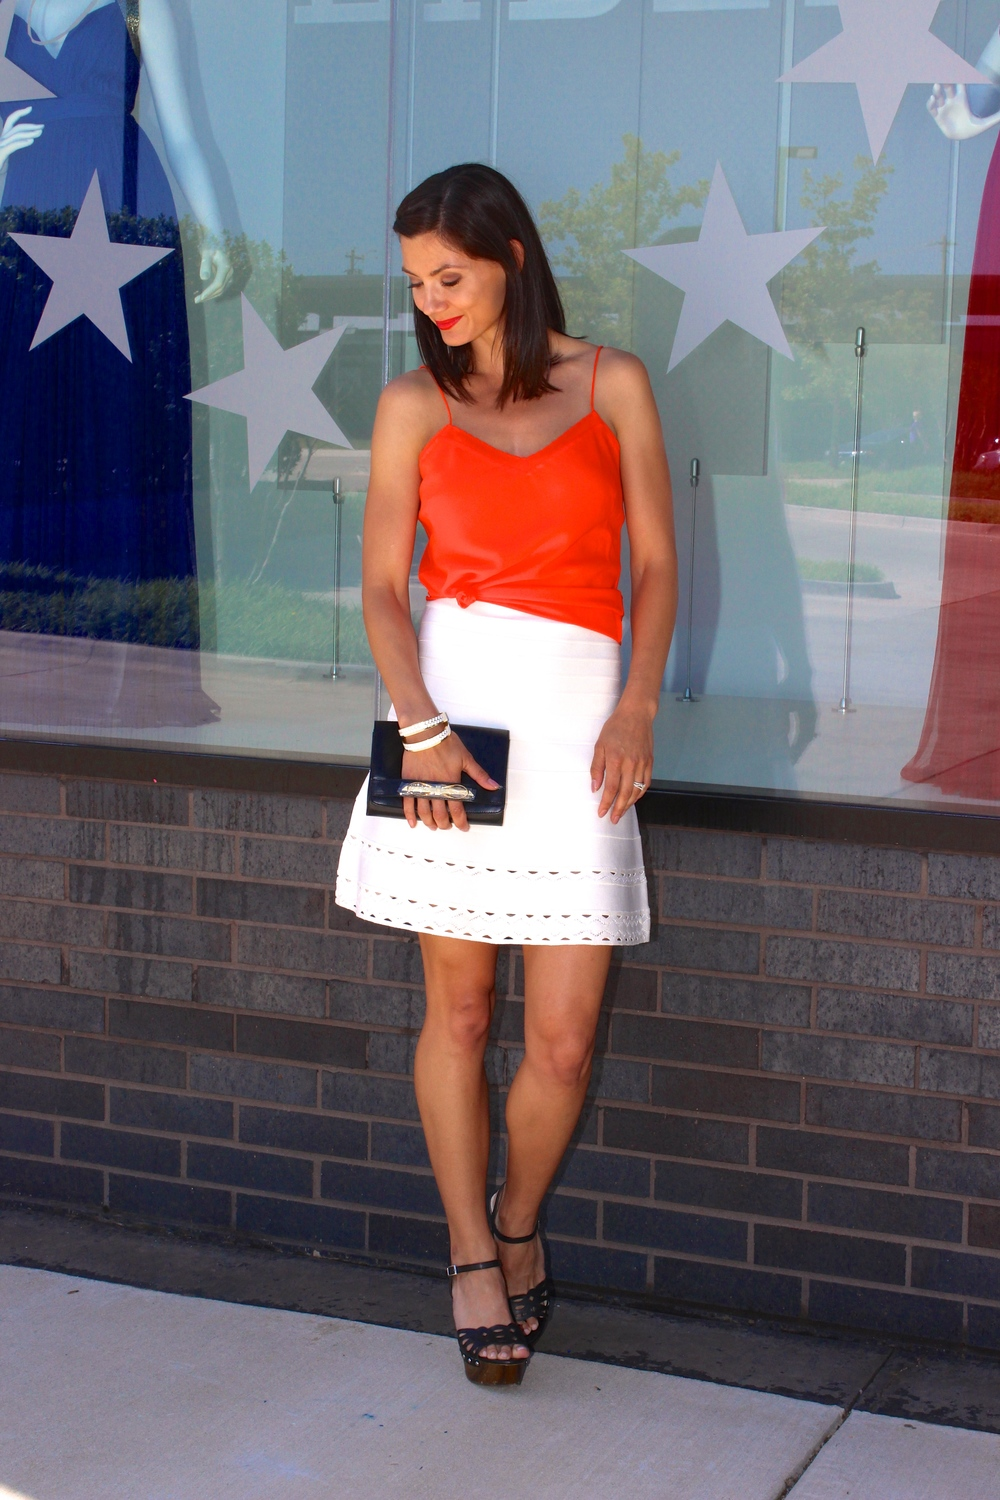 Ted Baker Scallop Edge Cami in Dark Orange  Hervé Leger Flare Skirt in Alabaster  Ted Baker Enamel Bangles in White & Gold Ted Baker Torrey Metal Slim Bow Leather Crossbody in Black ALL AVAILABLE IN STORE ONLY - INFO@GIVEMELIBERTE.COM